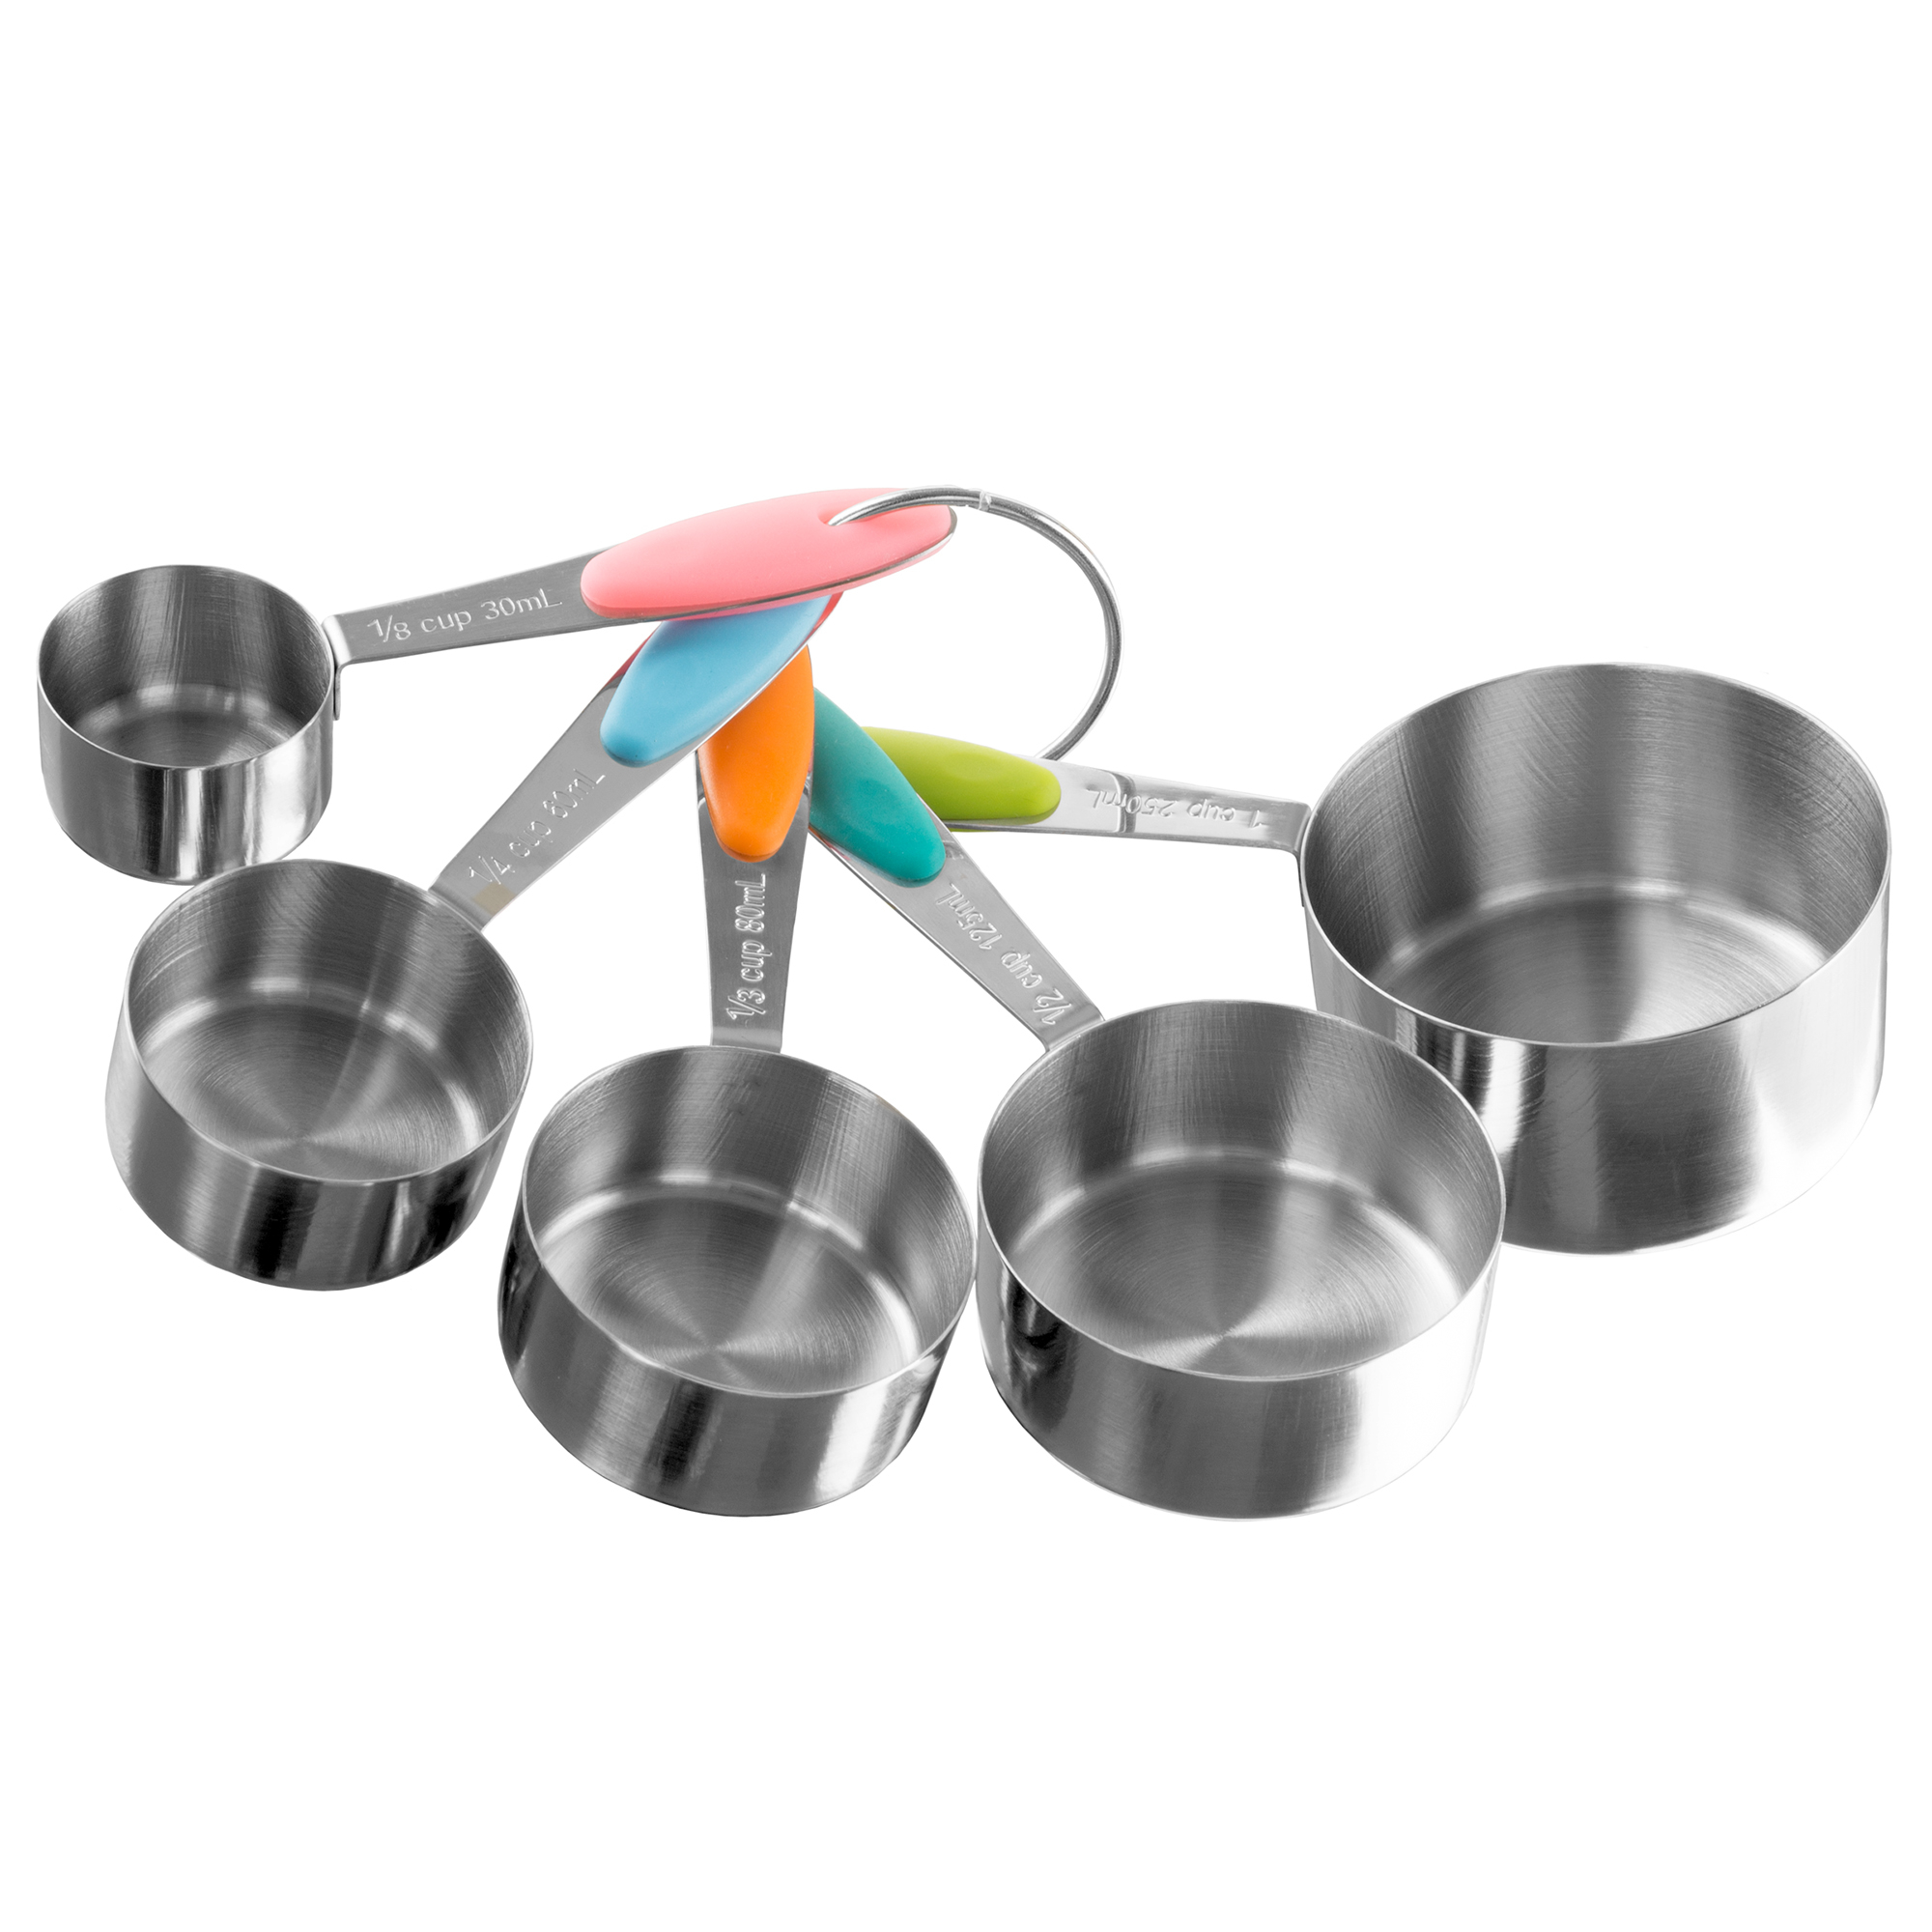 Stainless Steel Measuring Cups Set of 5 on Ring Space Saving Stacks Inside Cups and Metric Measurements 5a33f8e92a00e4531e5cd5da